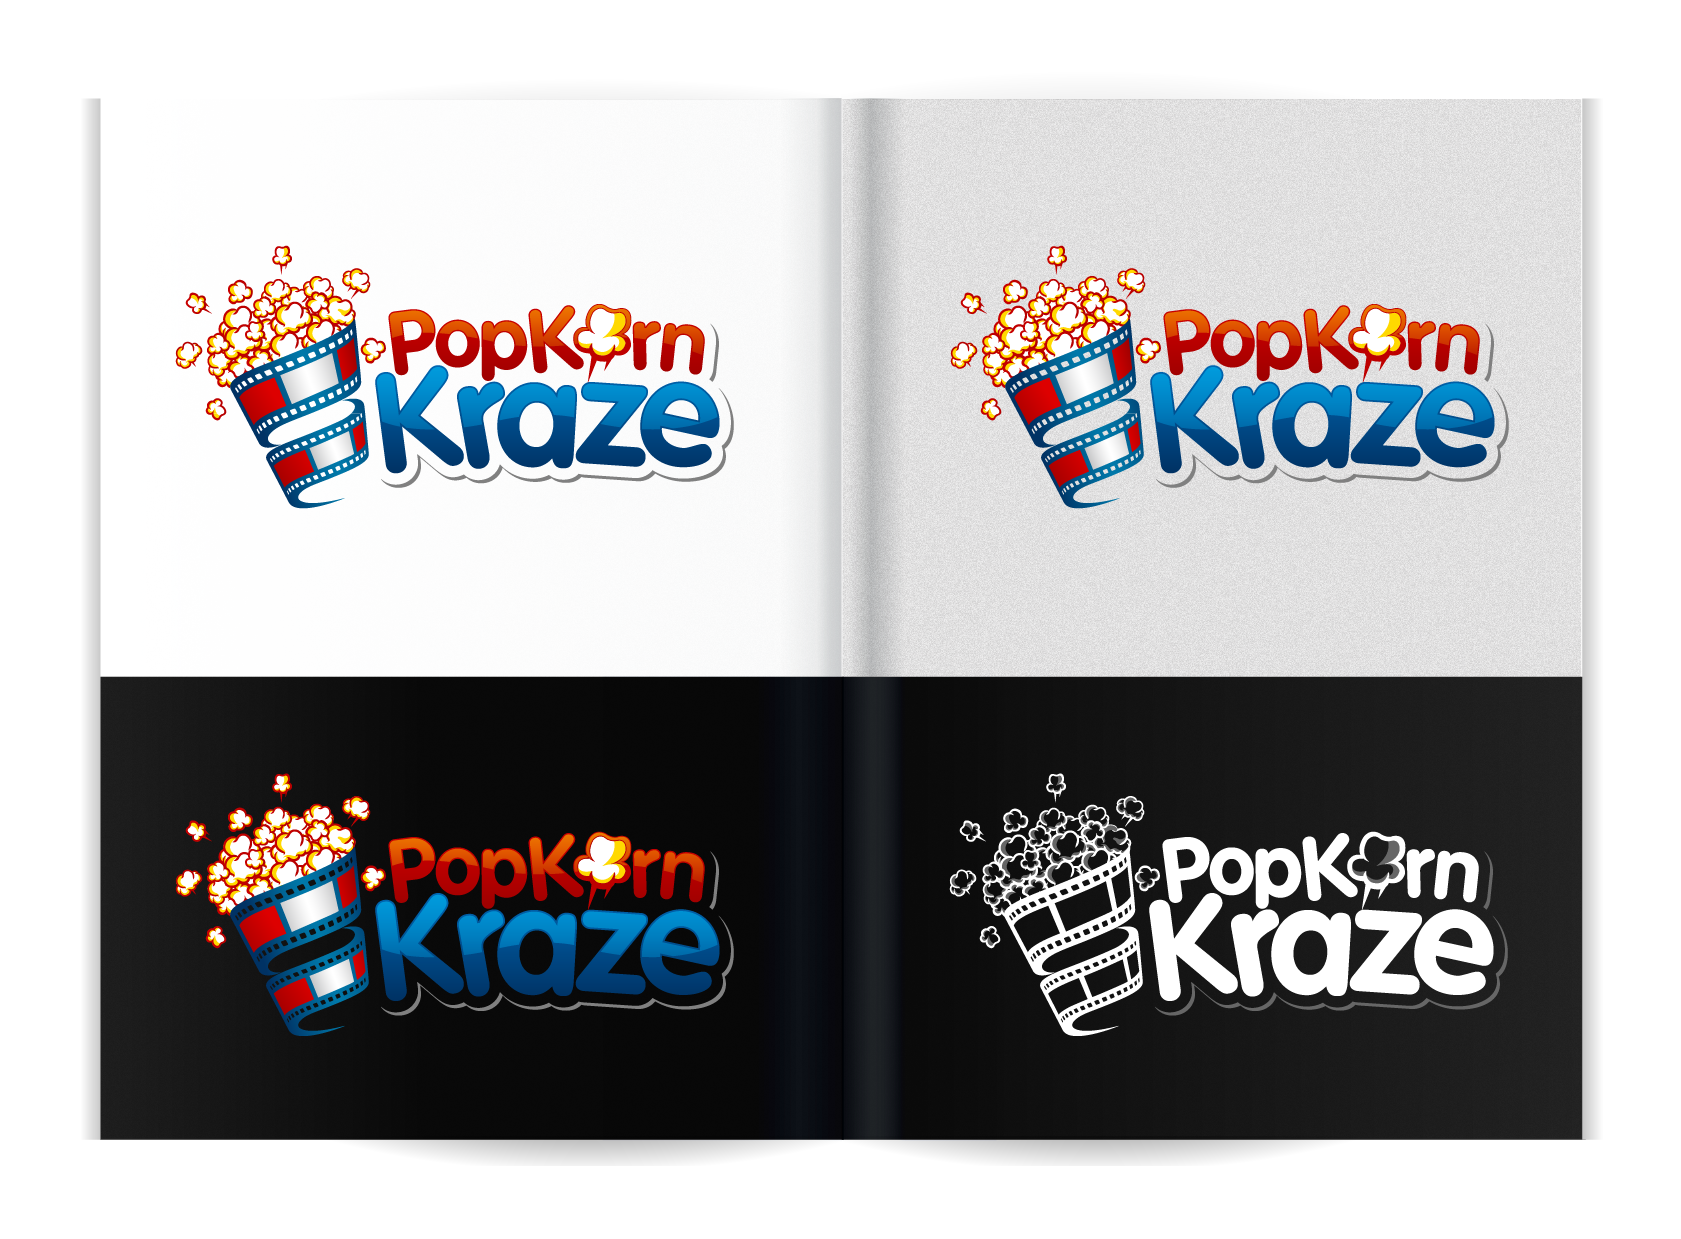 New logo wanted for PopKorn Kraze